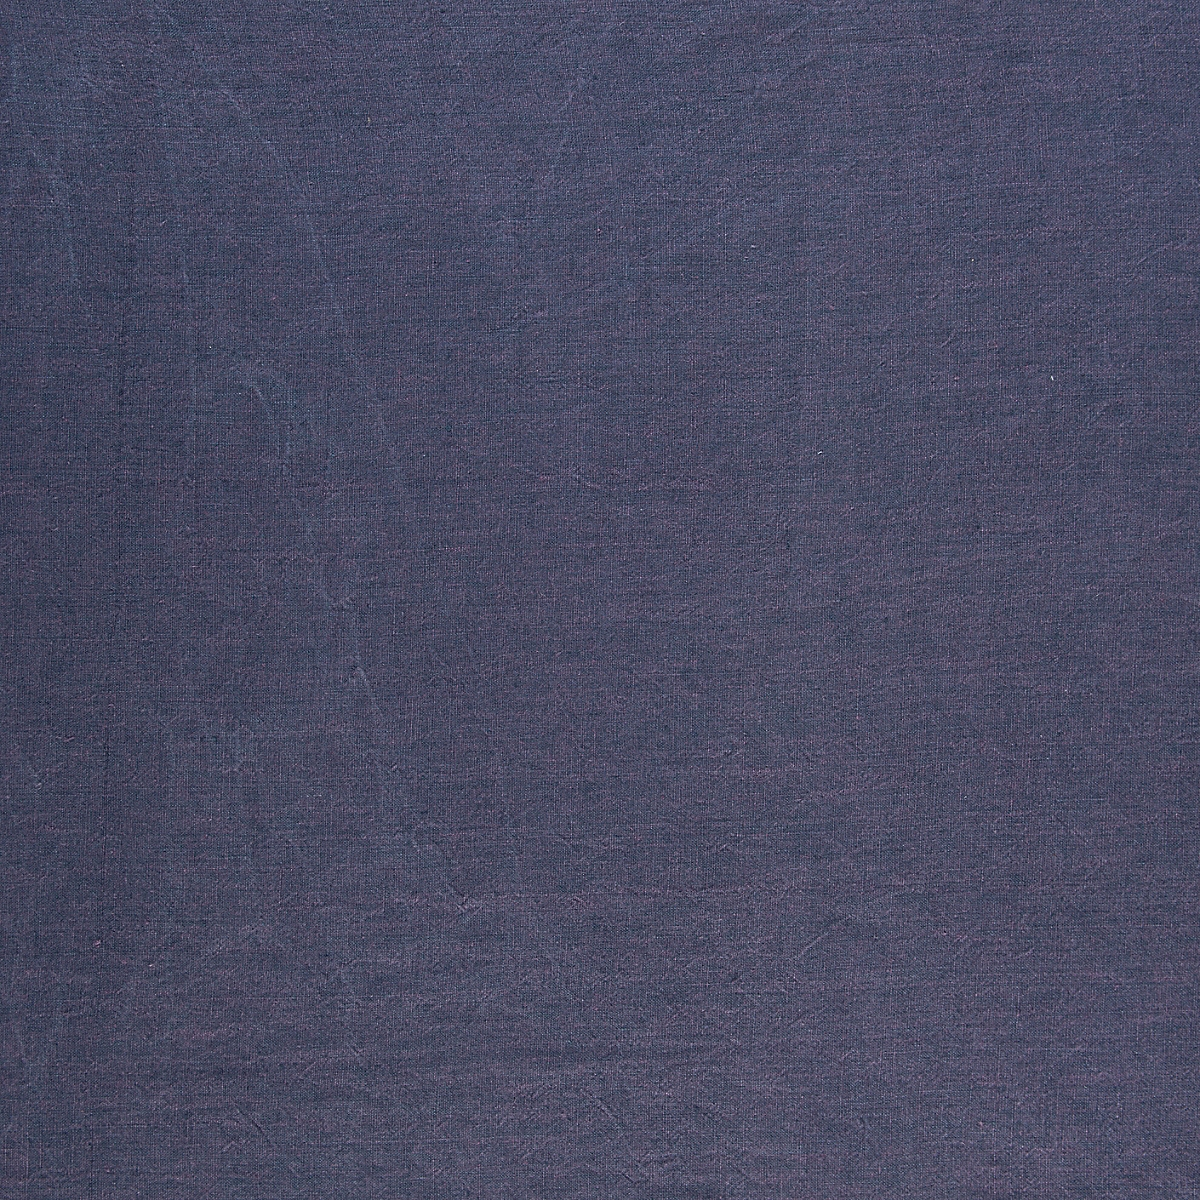 Oxford Linen: Orchid (fabric yardage)